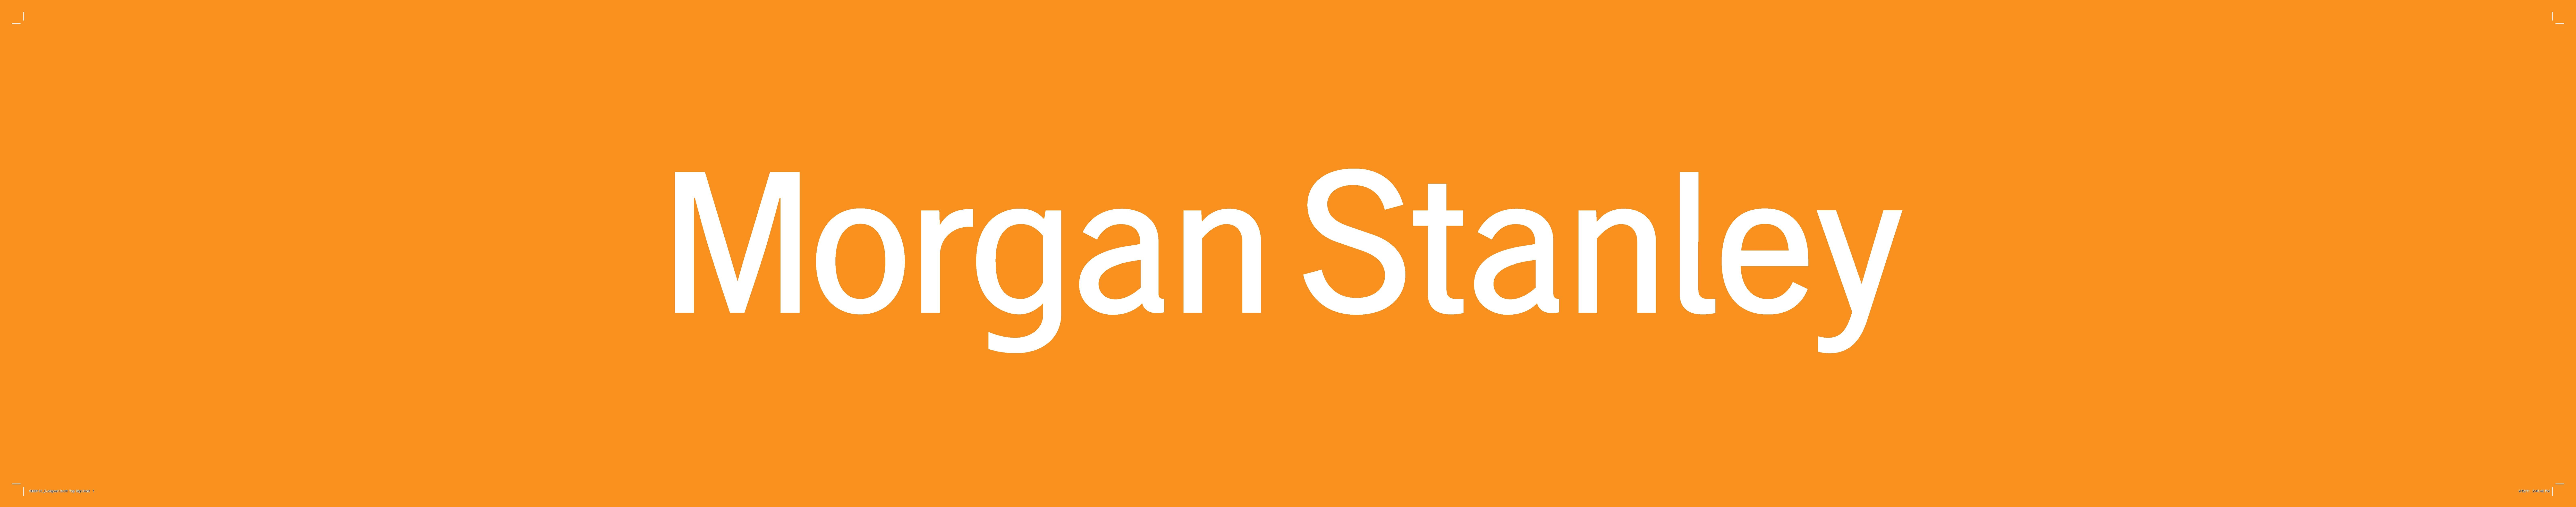 Morgan stanley dating policy — 9